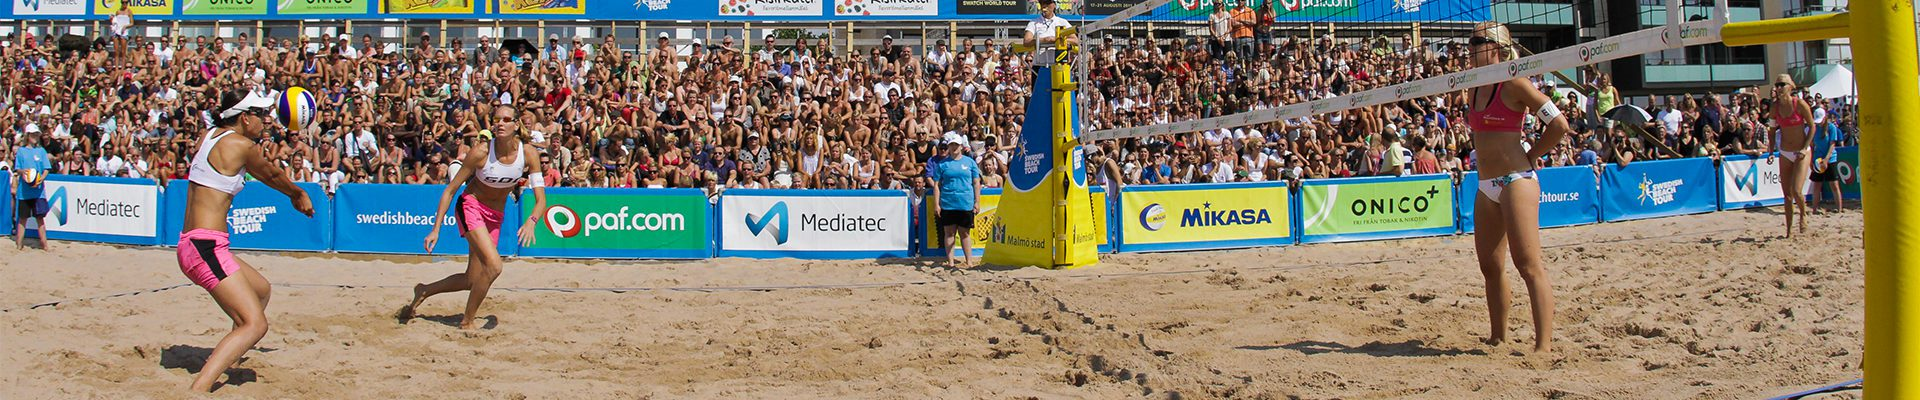 TopImage_beachvolley_1920x400